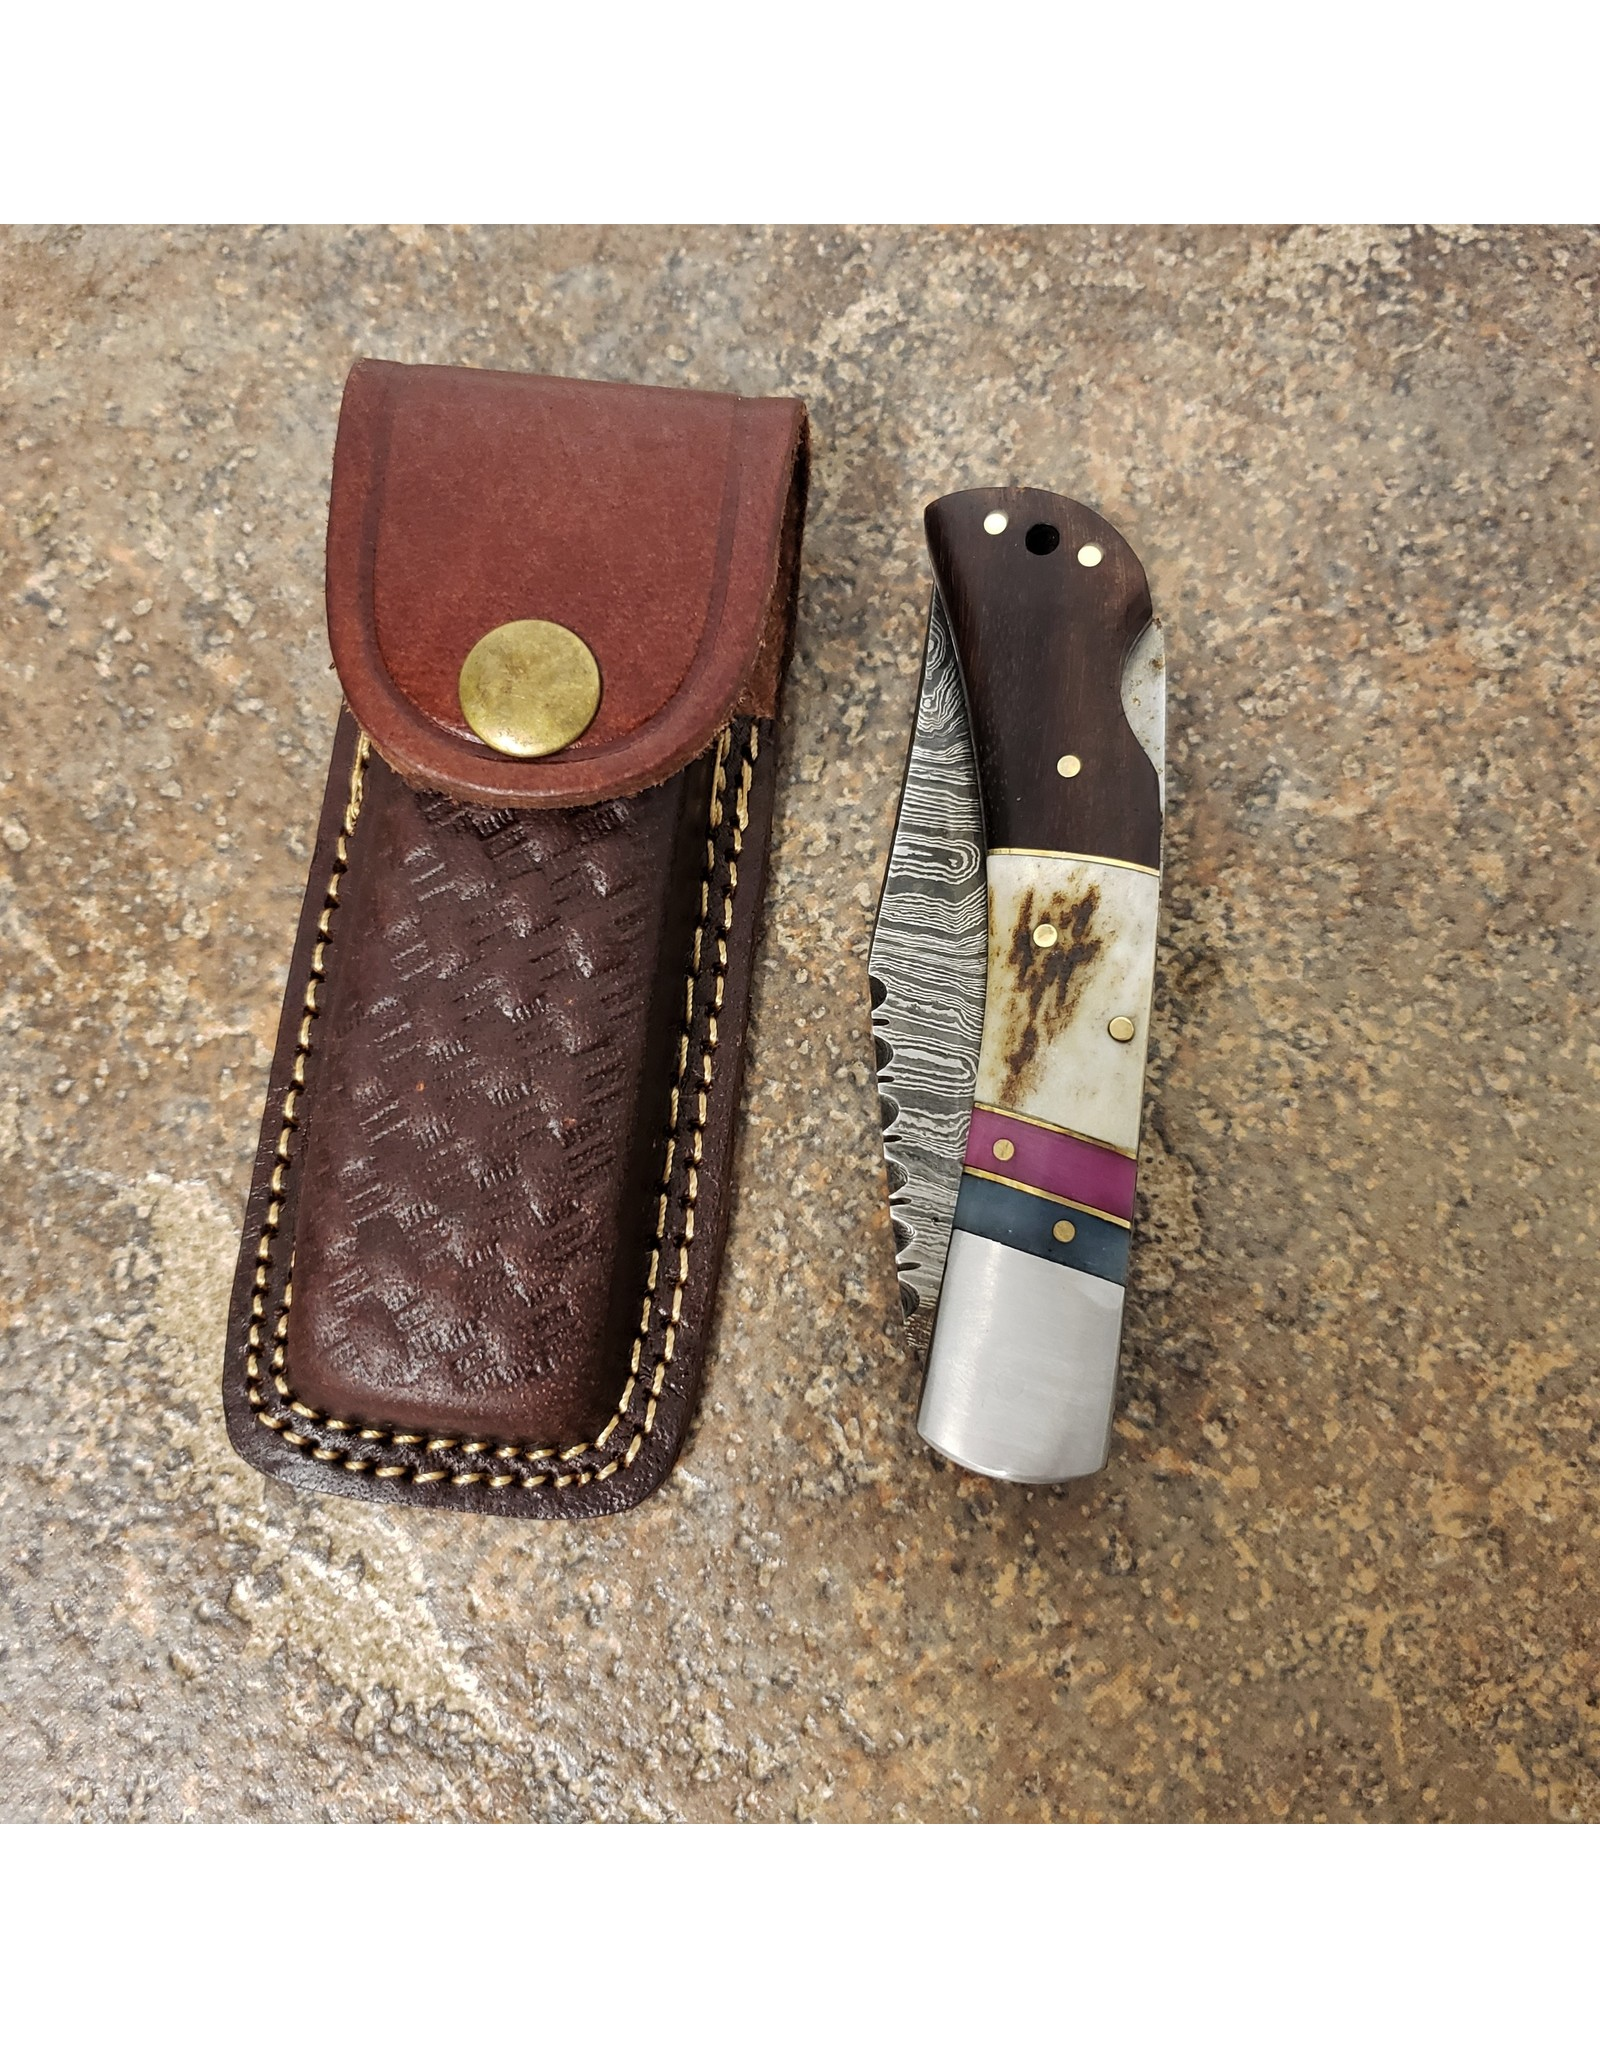 "DAMASCUS 4"" FOLDING KNIFE BROWN/WHITE HANDLE"